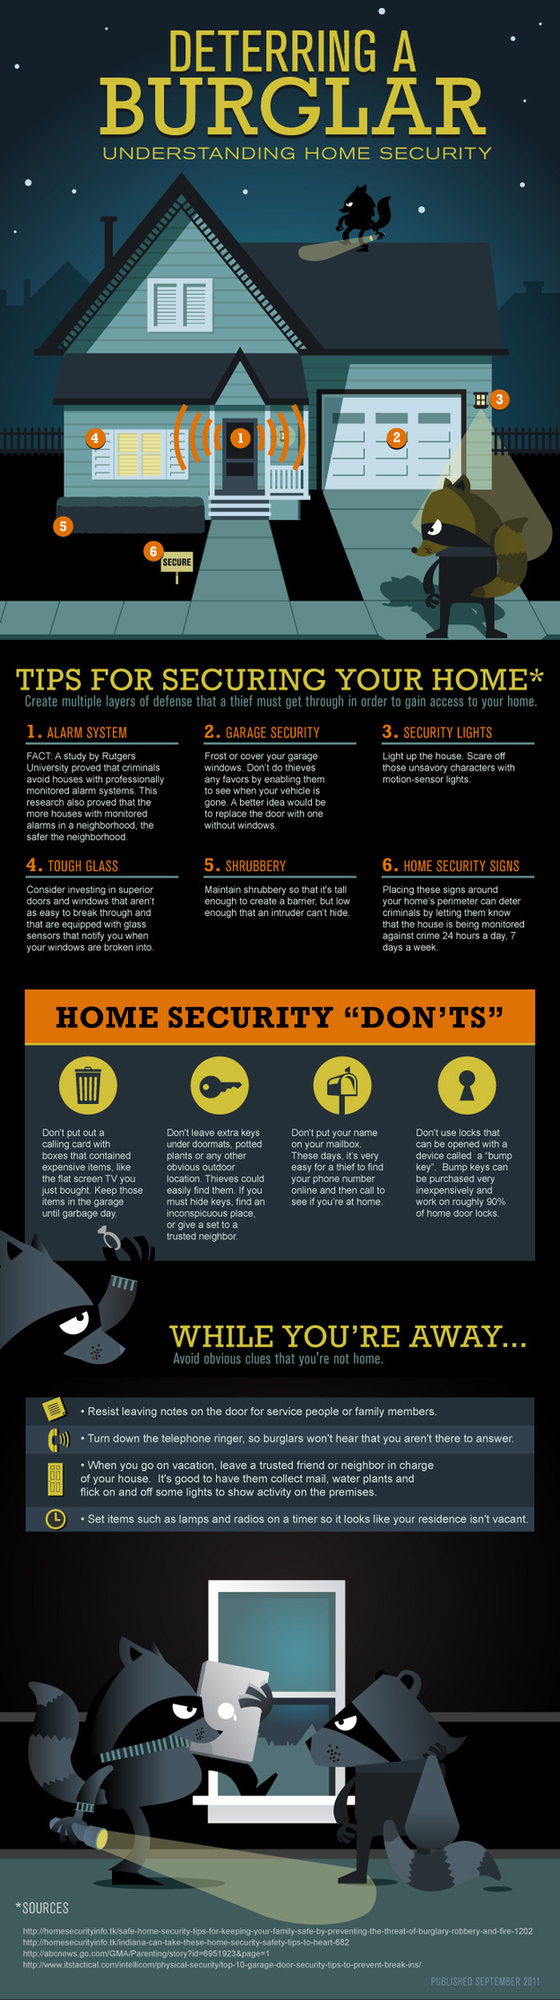 How to Deter a Burglar [Infographic]